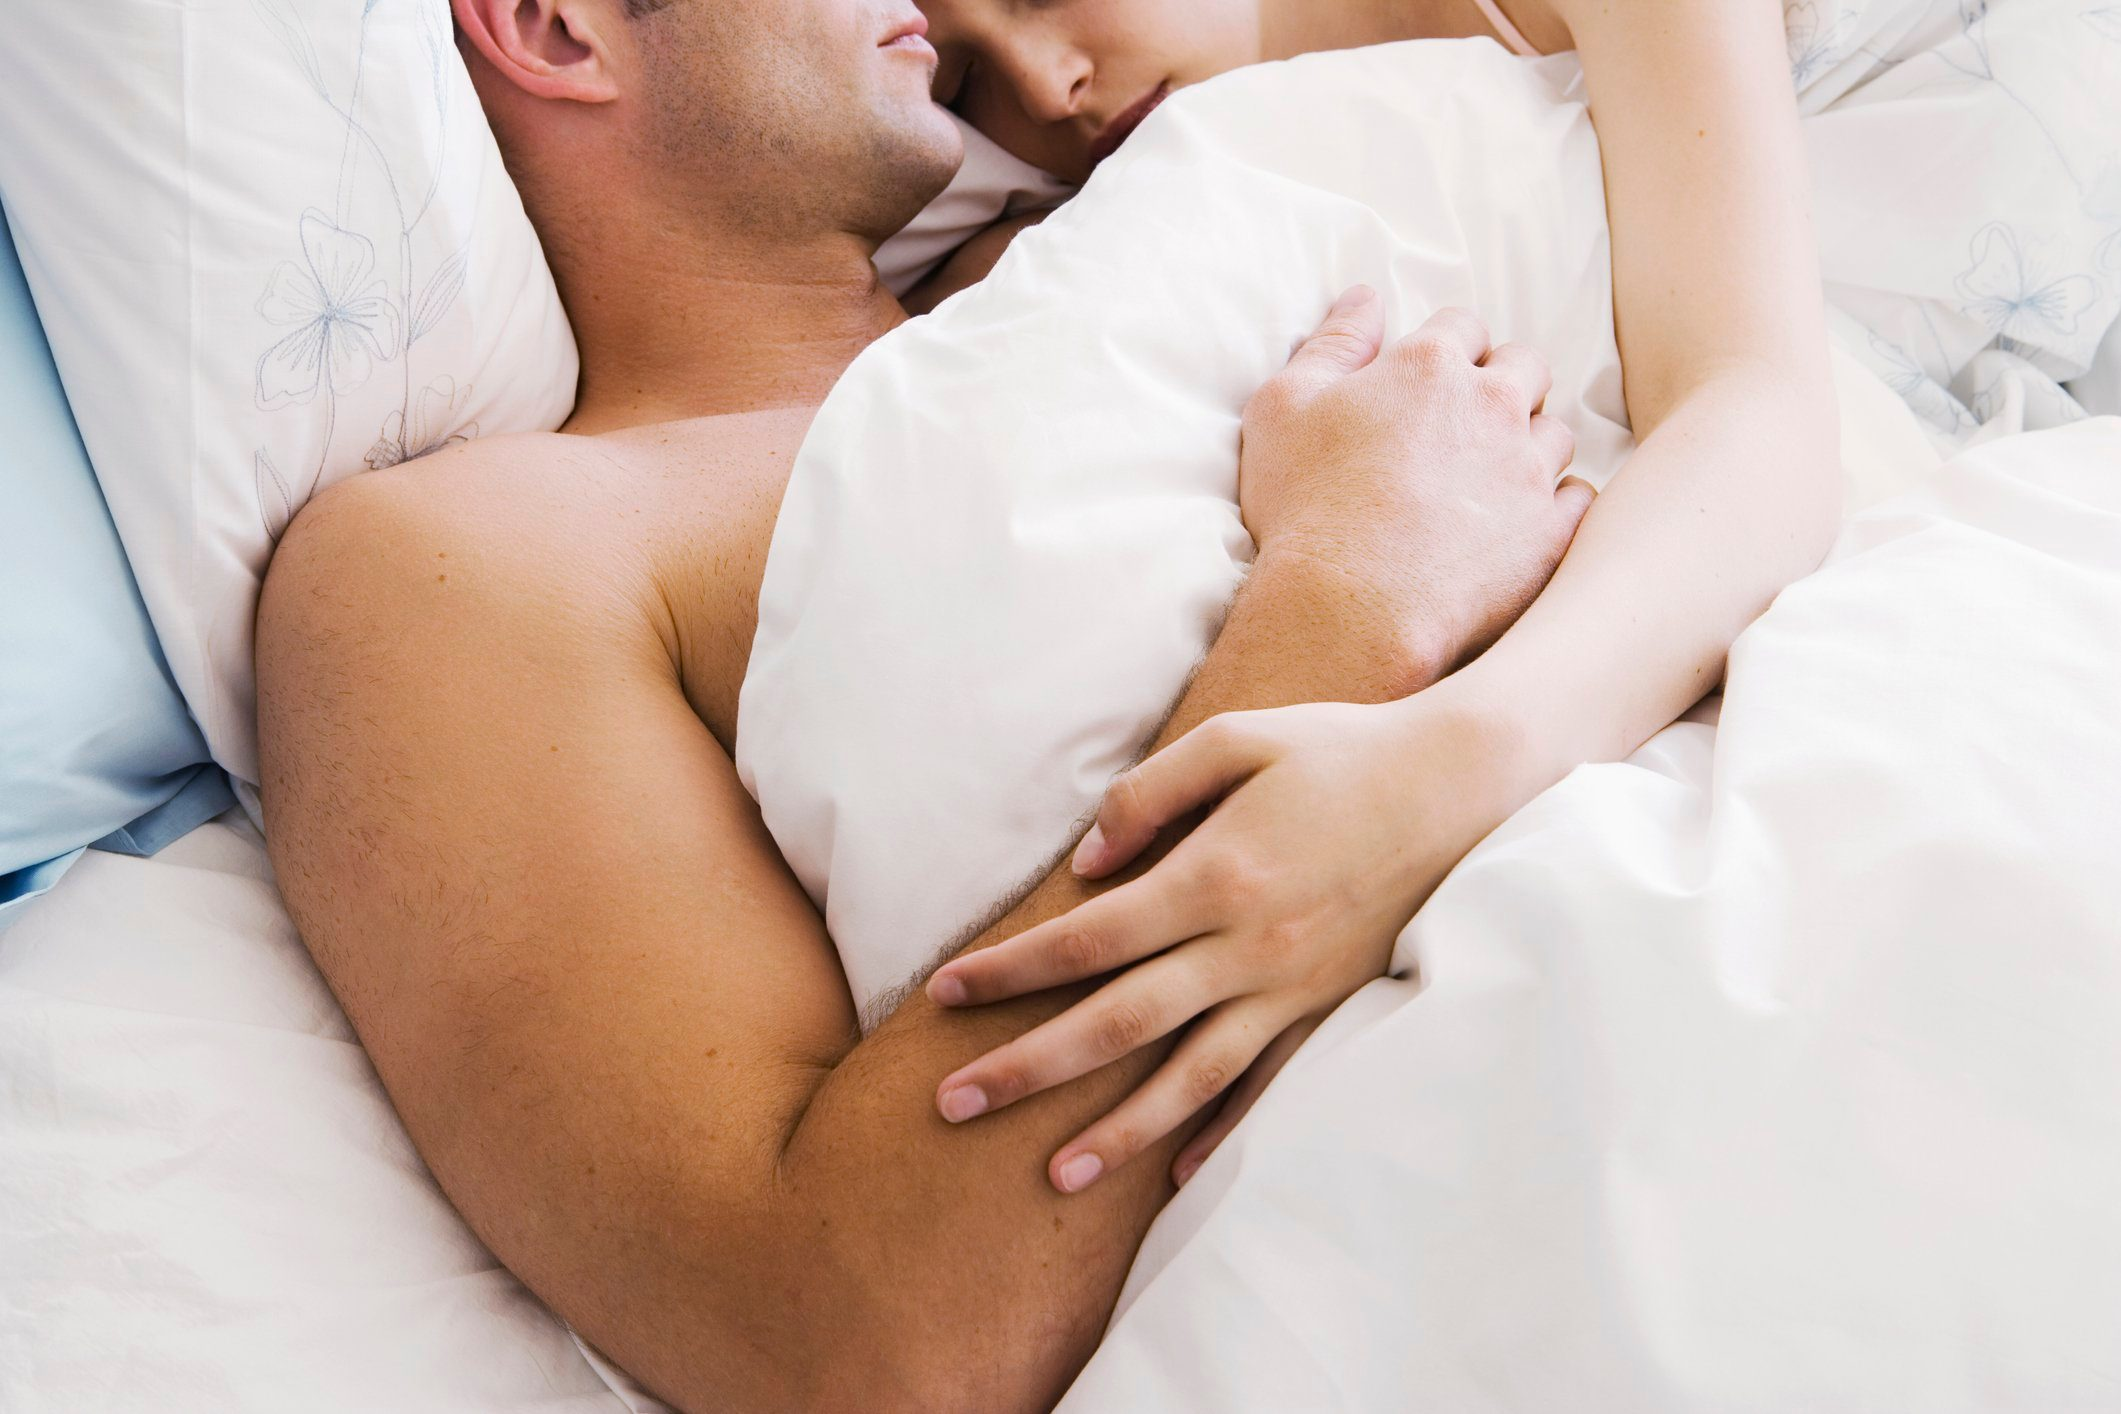 sex mistakes | couple holding each other in bed